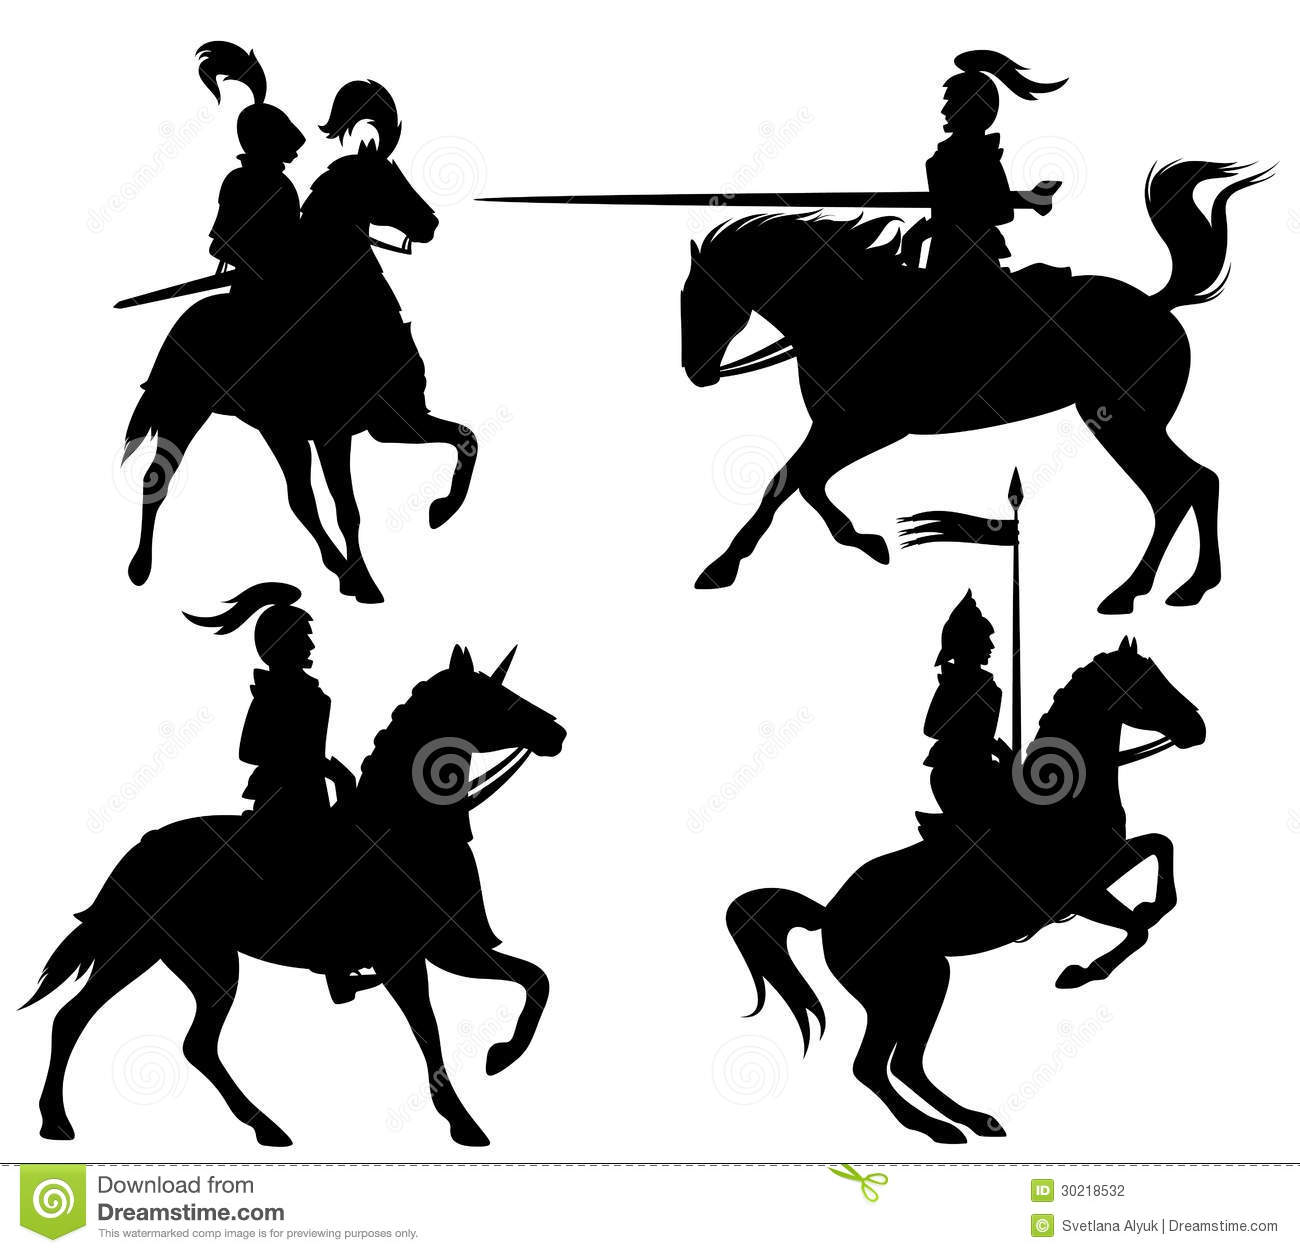 Knights and horses fine silhouettes - black outlines over white.